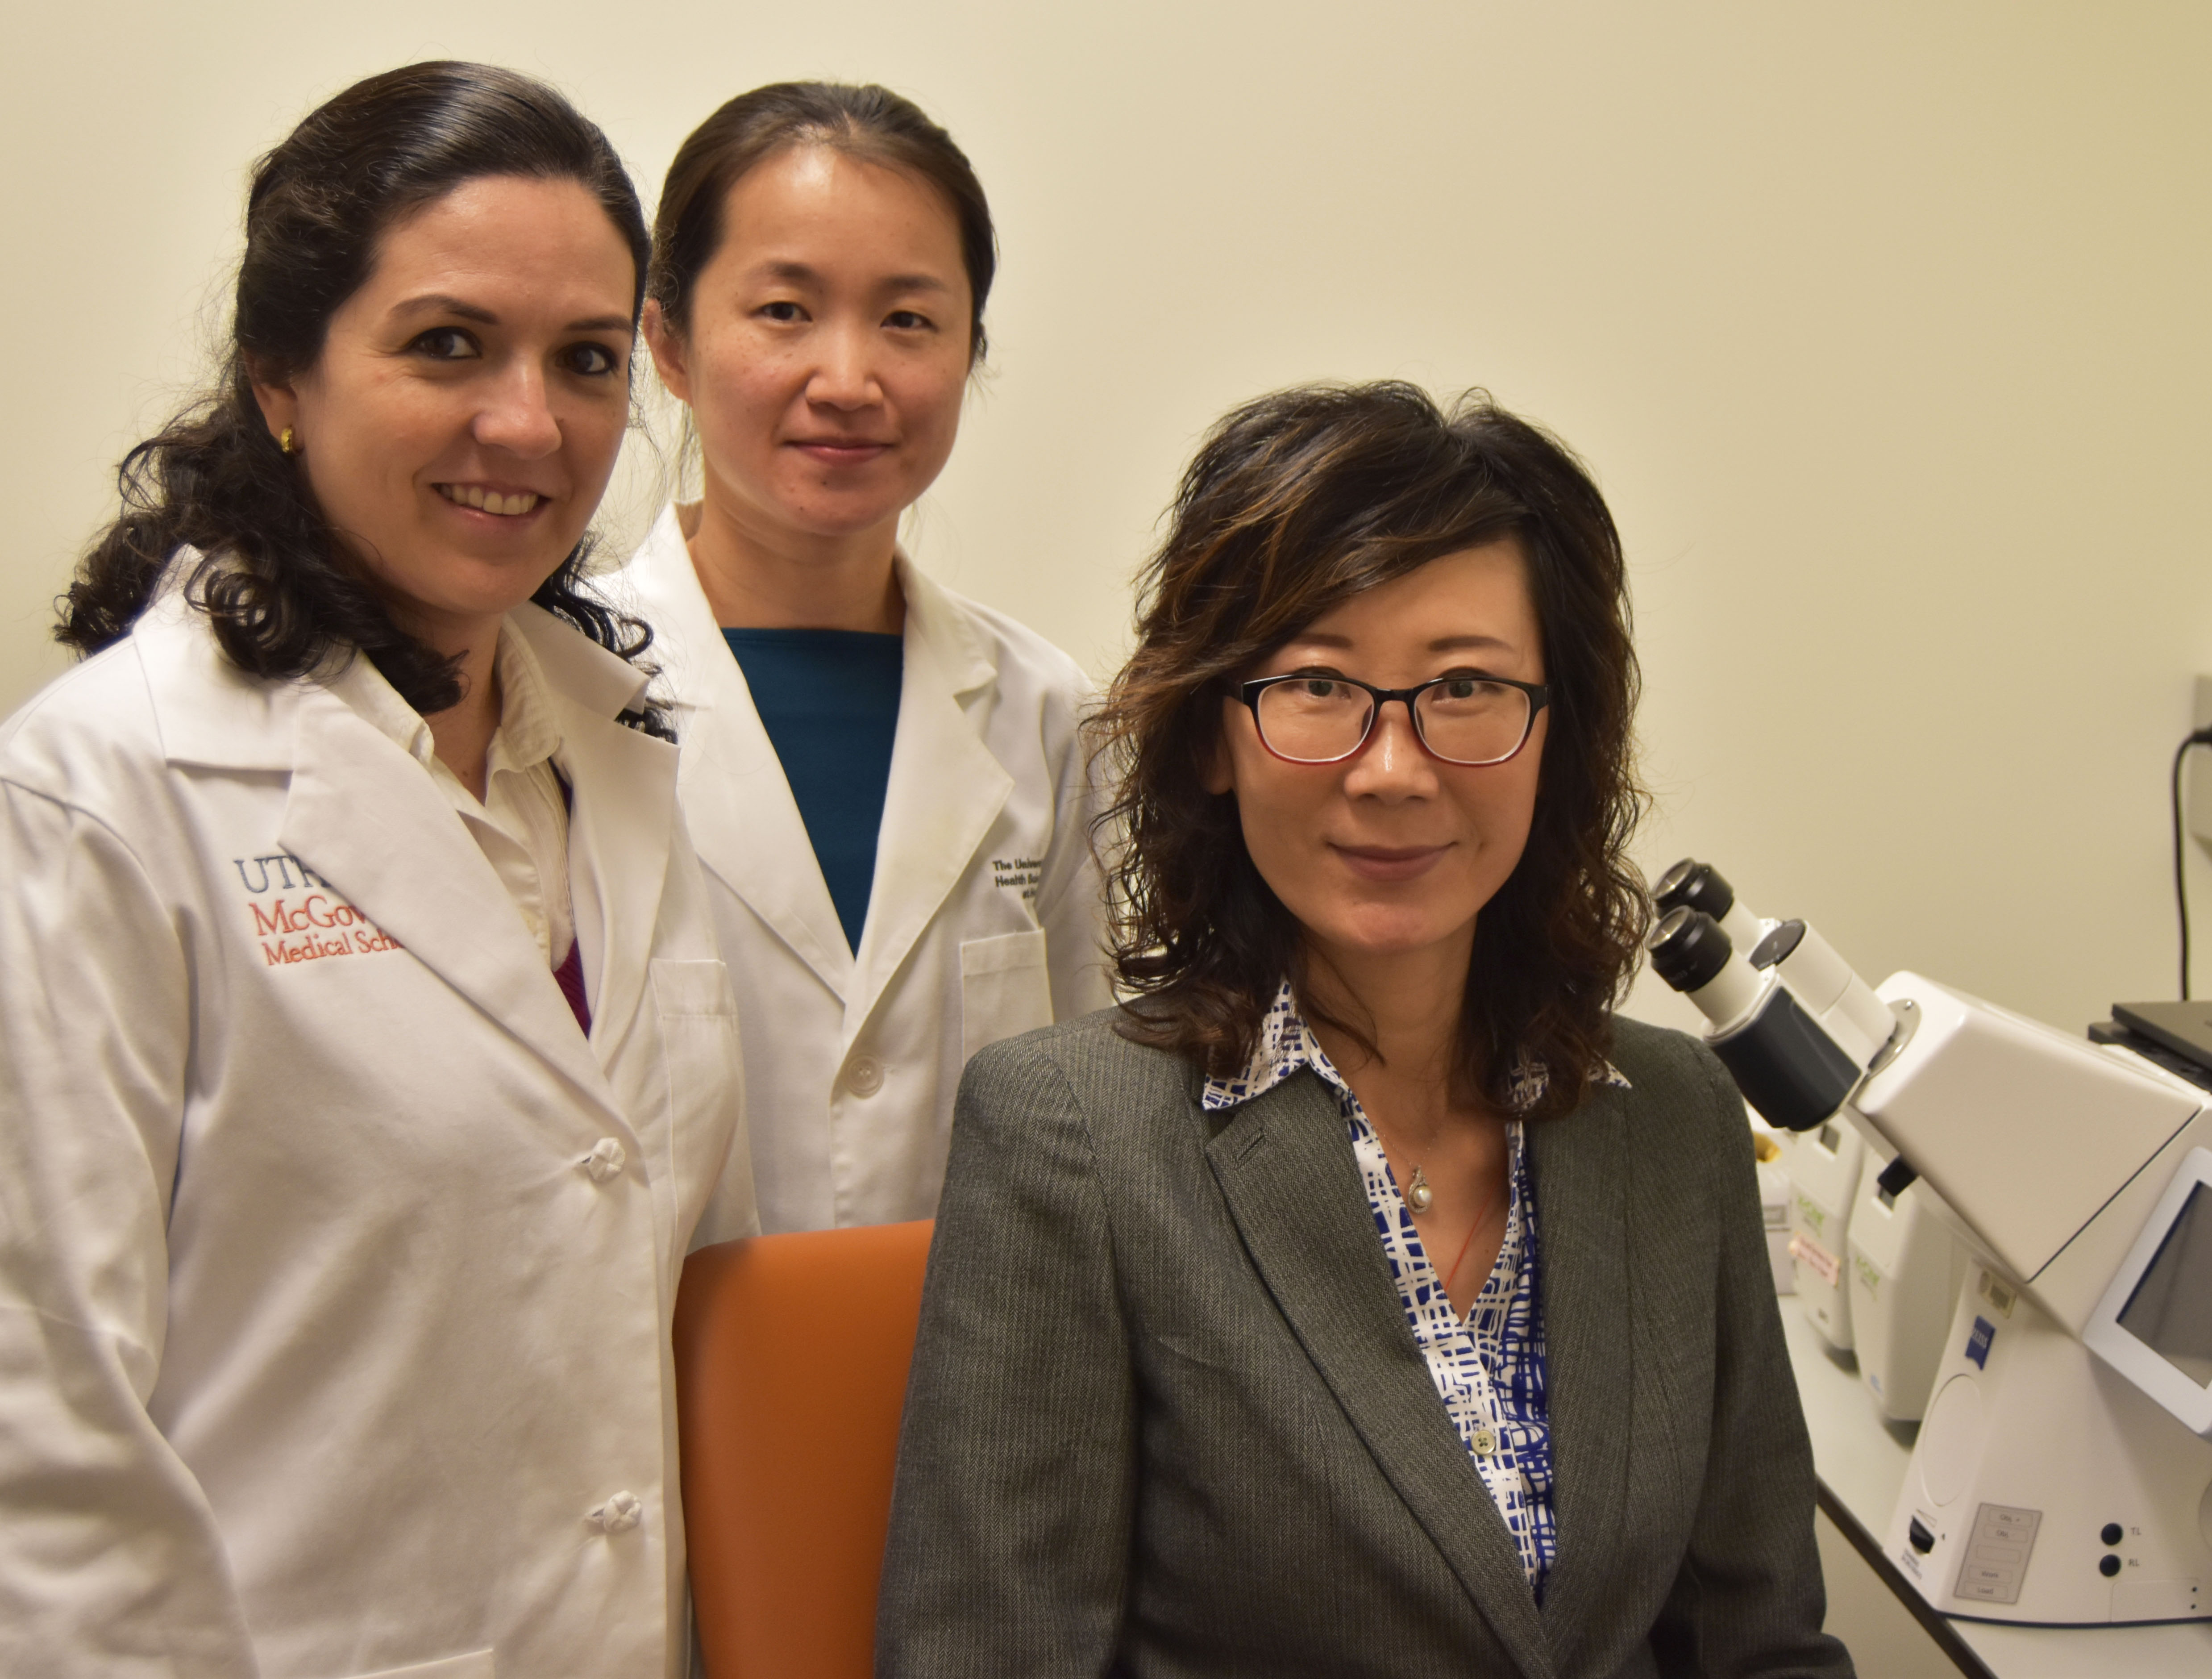 Working on new treatments for spinal injuries at McGovern Medical School are Raquel Cuevas-Diaz Duran, Ph.D.; from left, Han Yan, Ph.D.; and Jiaqian Wu, Ph.D.